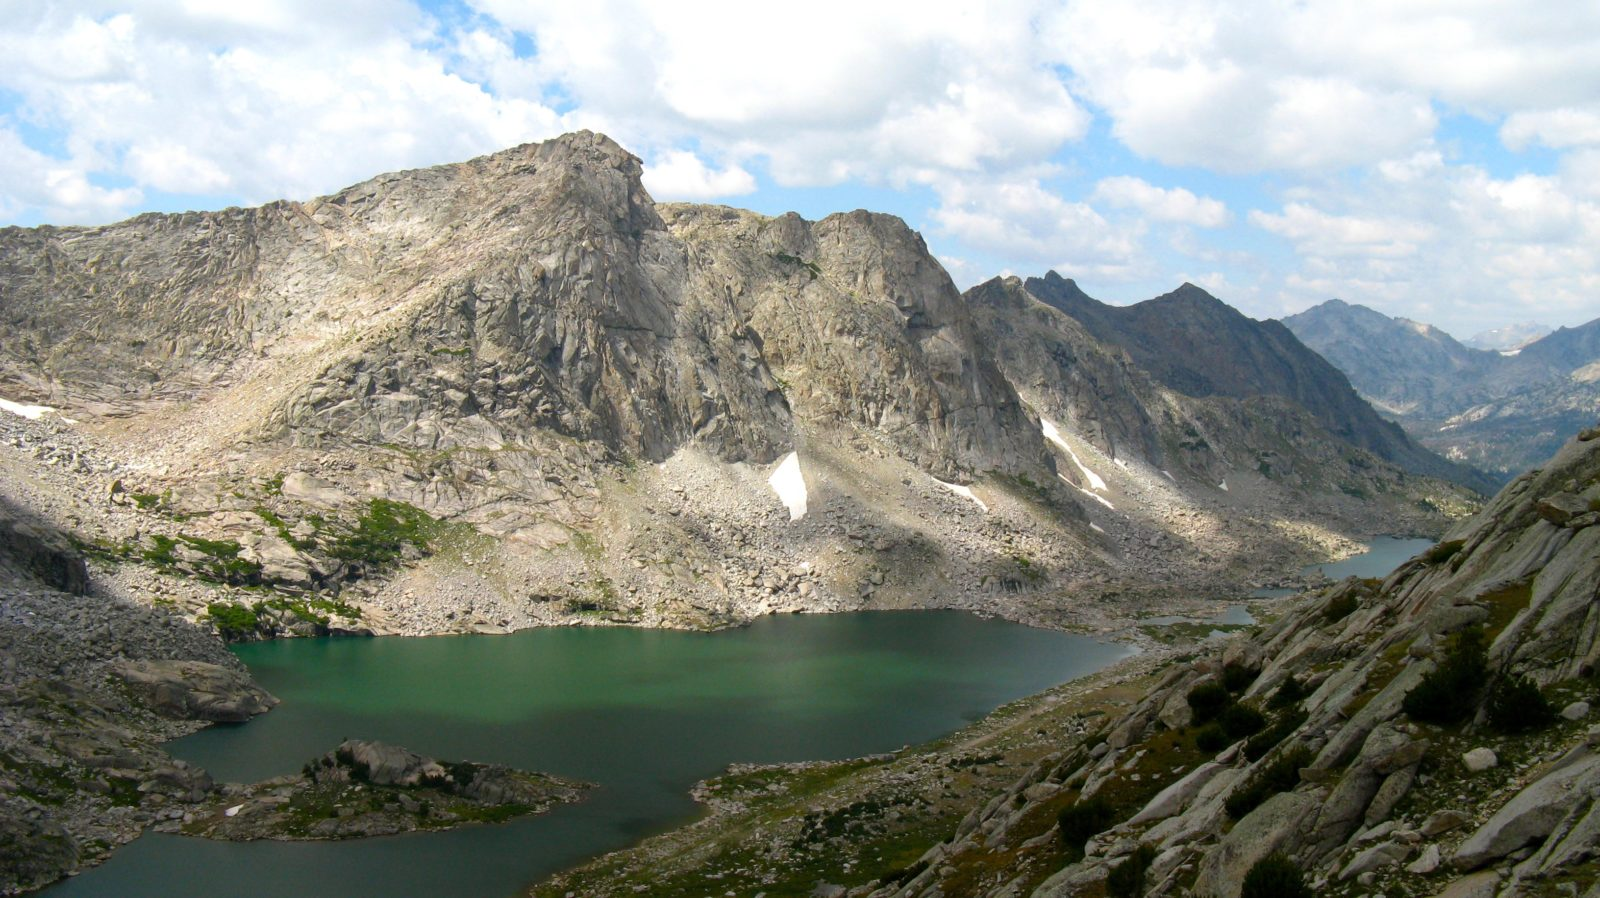 An alpine lake in the Bridger Wilderness